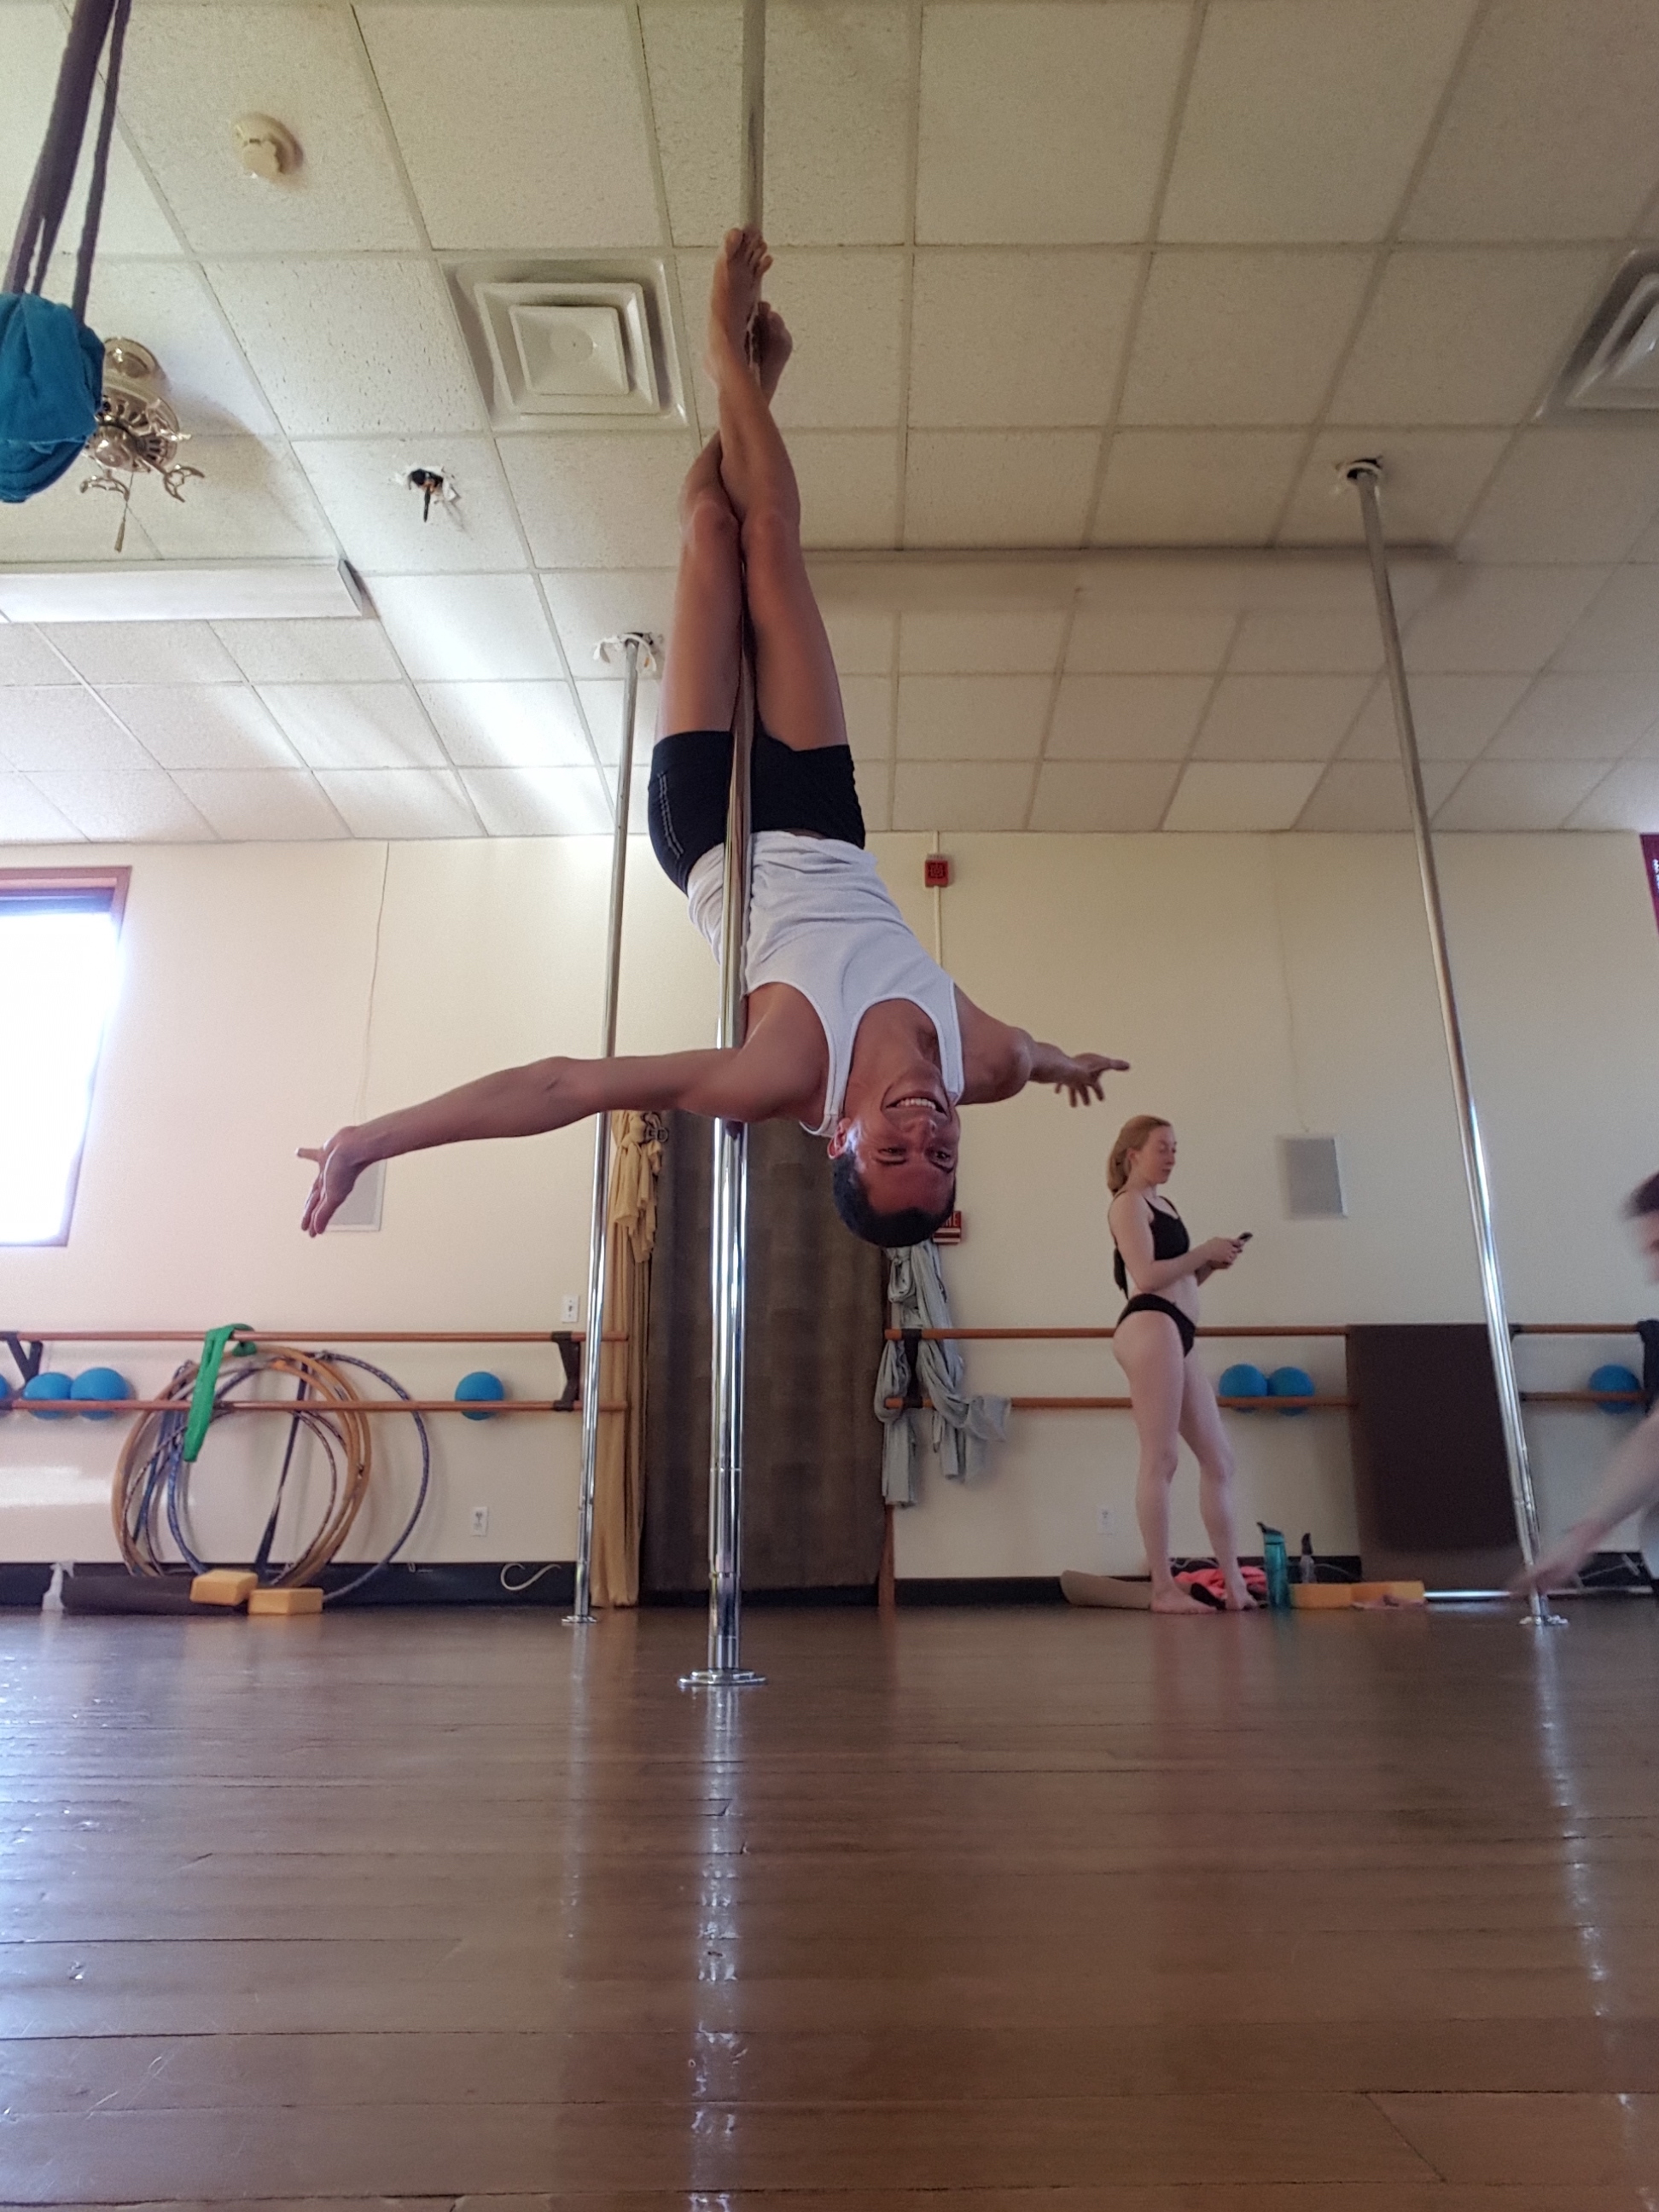 Inversions, Pole Fitness, Crucifix, Dance, Fitness, Polemen, Pole, Exercise